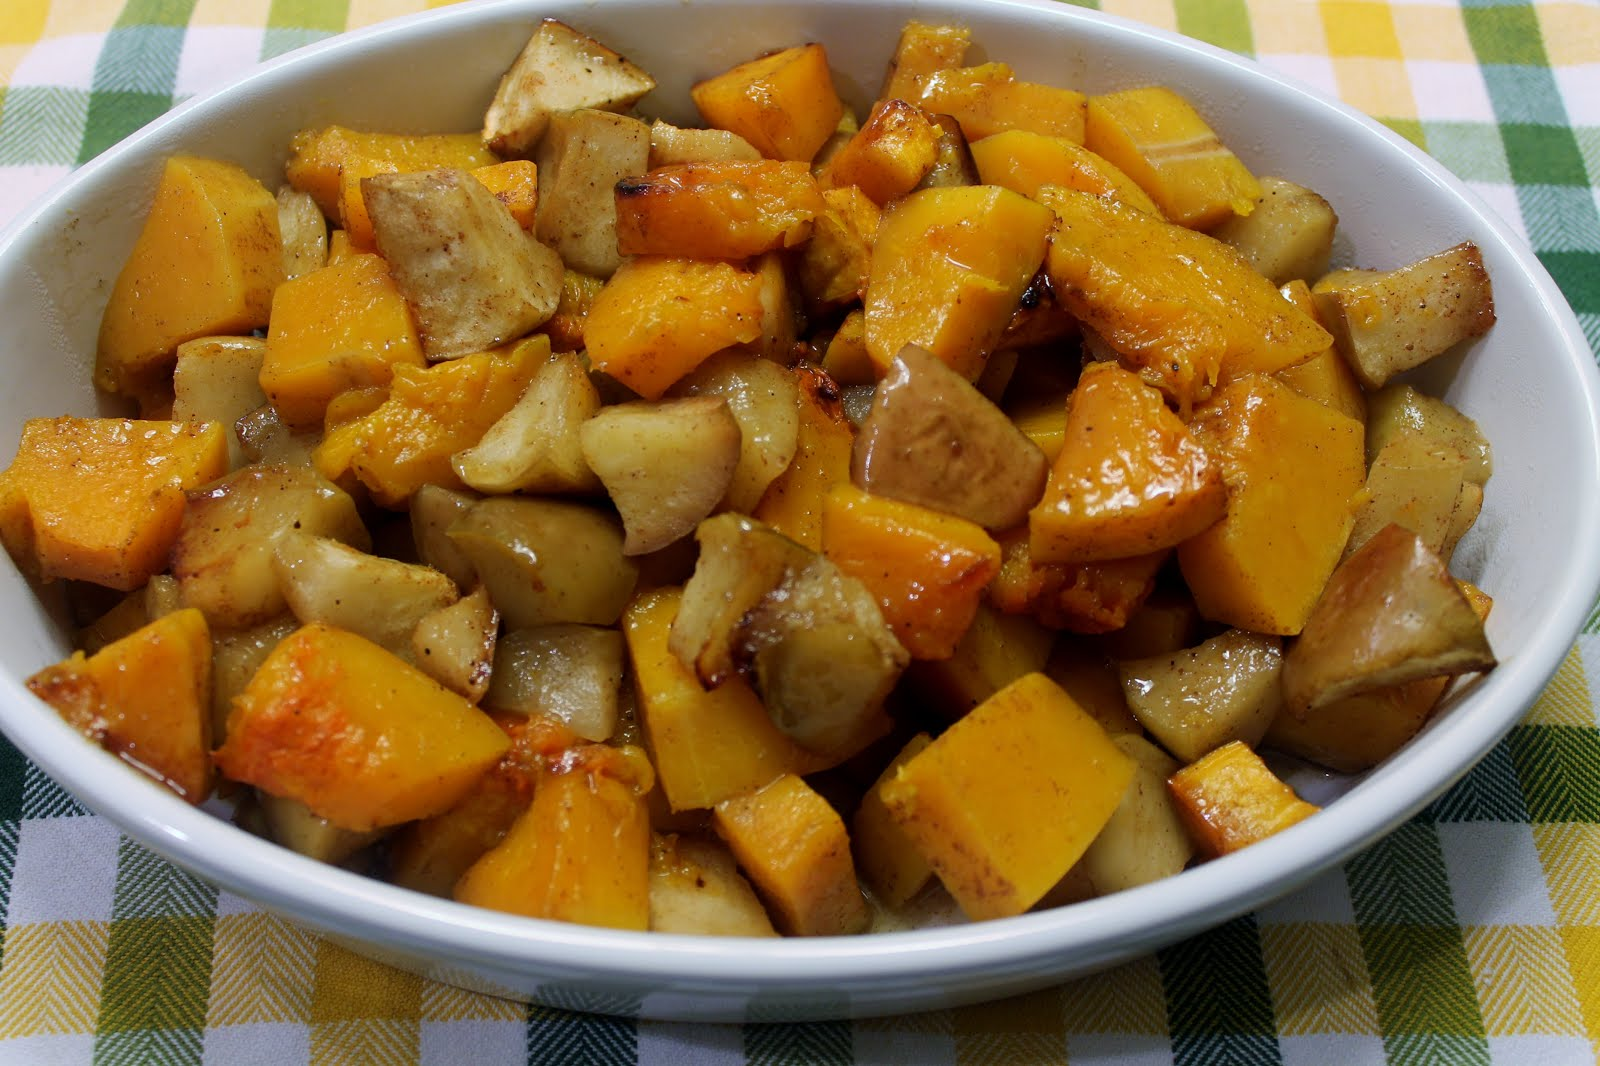 roasted butternut squash with apples ingredients 1 large butternut ...